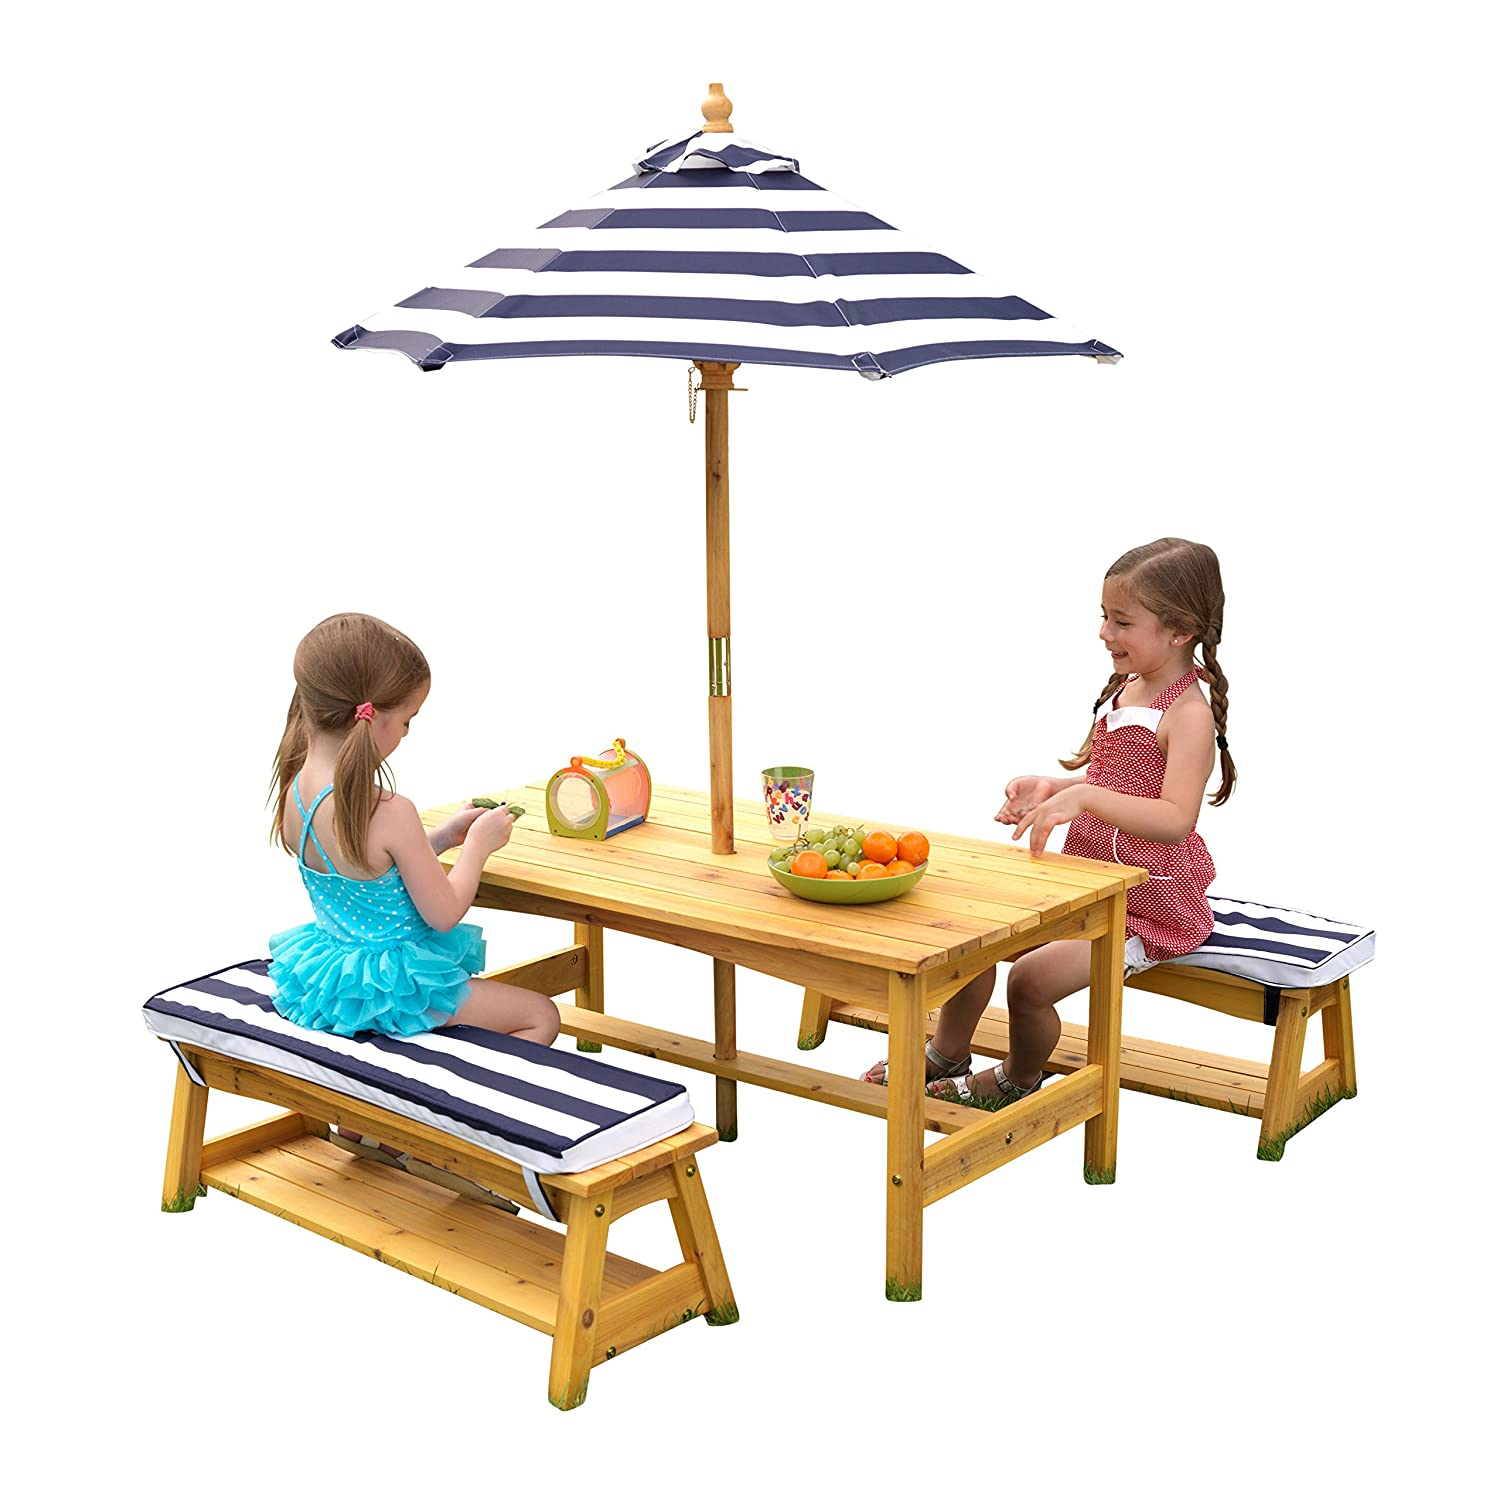 Amazon com kidkraft outdoor table and chair set with cushions and navy stripes toys games